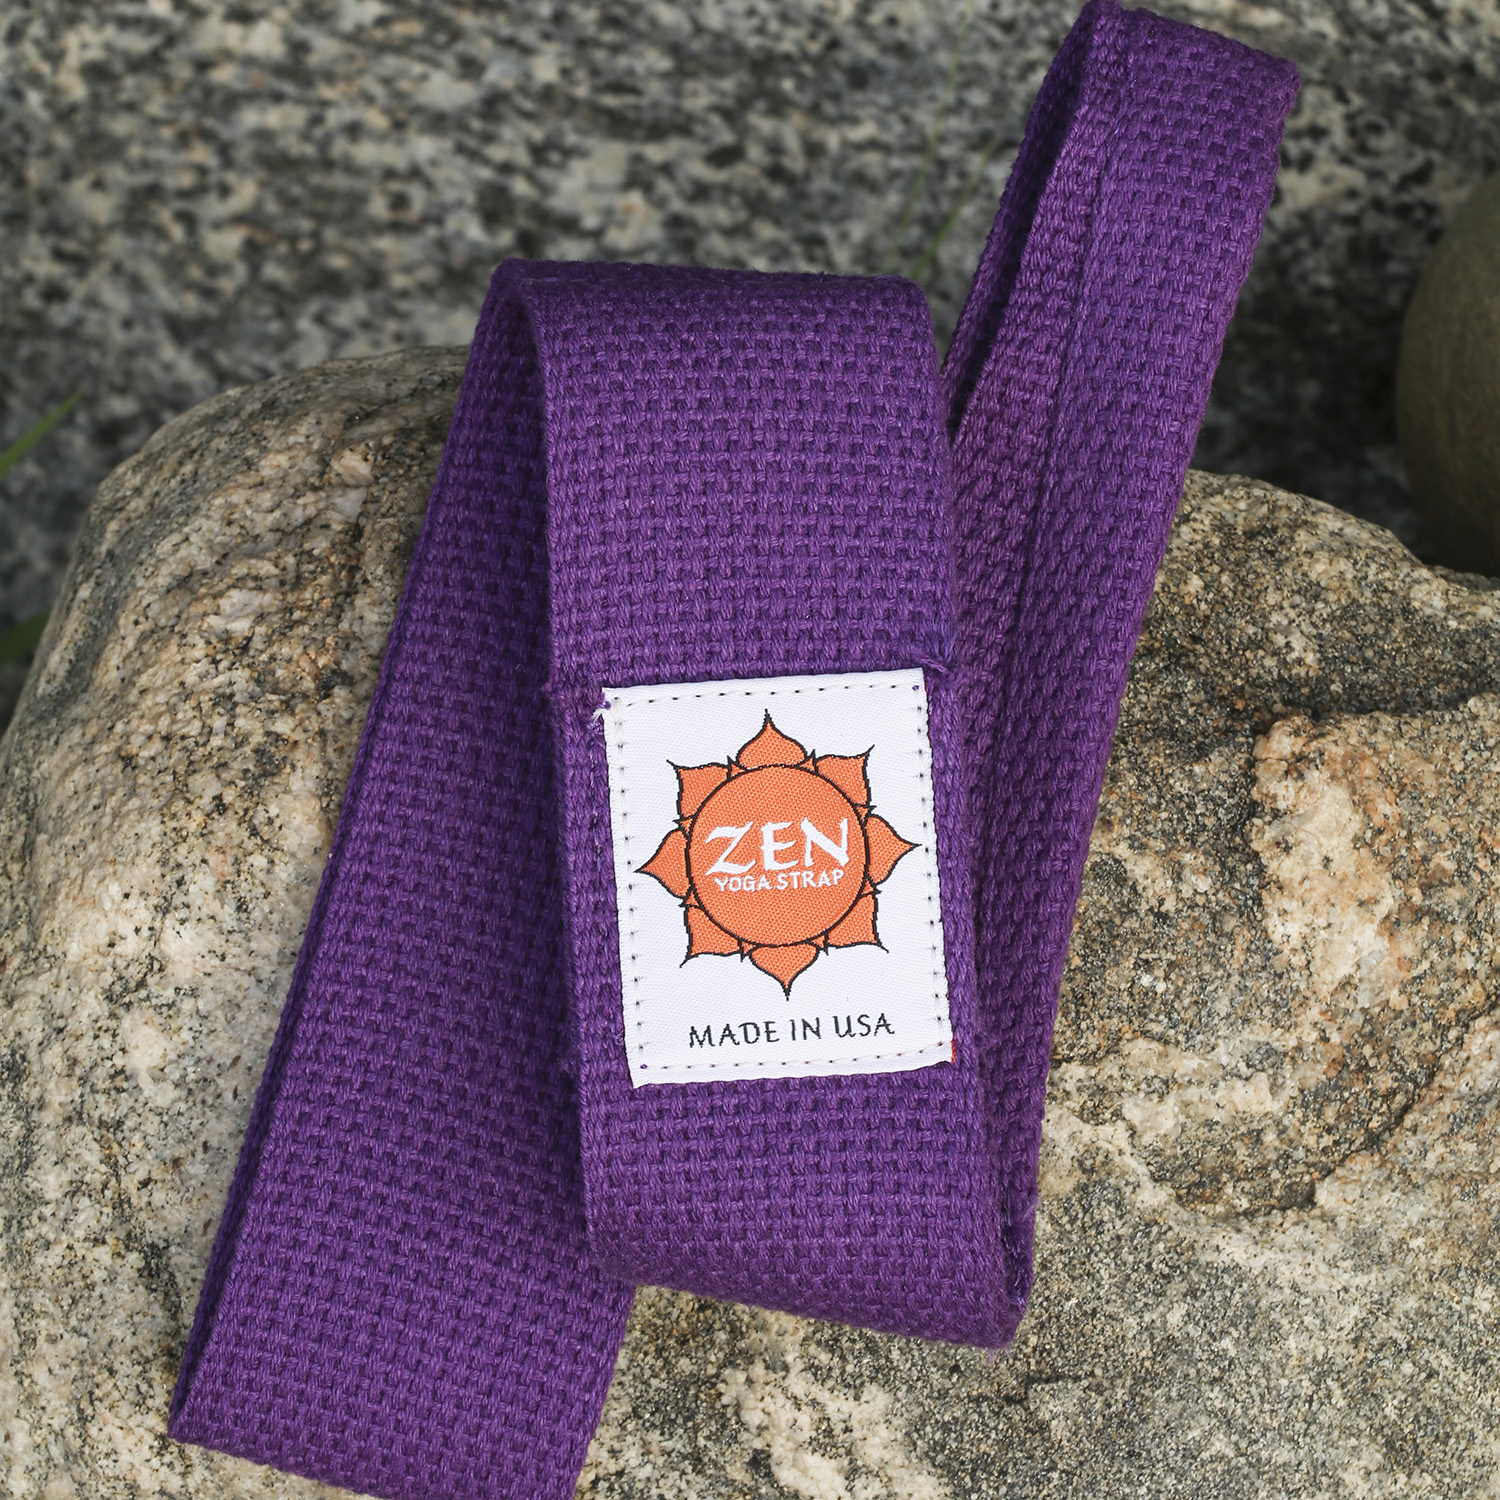 Zen Yoga Strap: Purple Strap